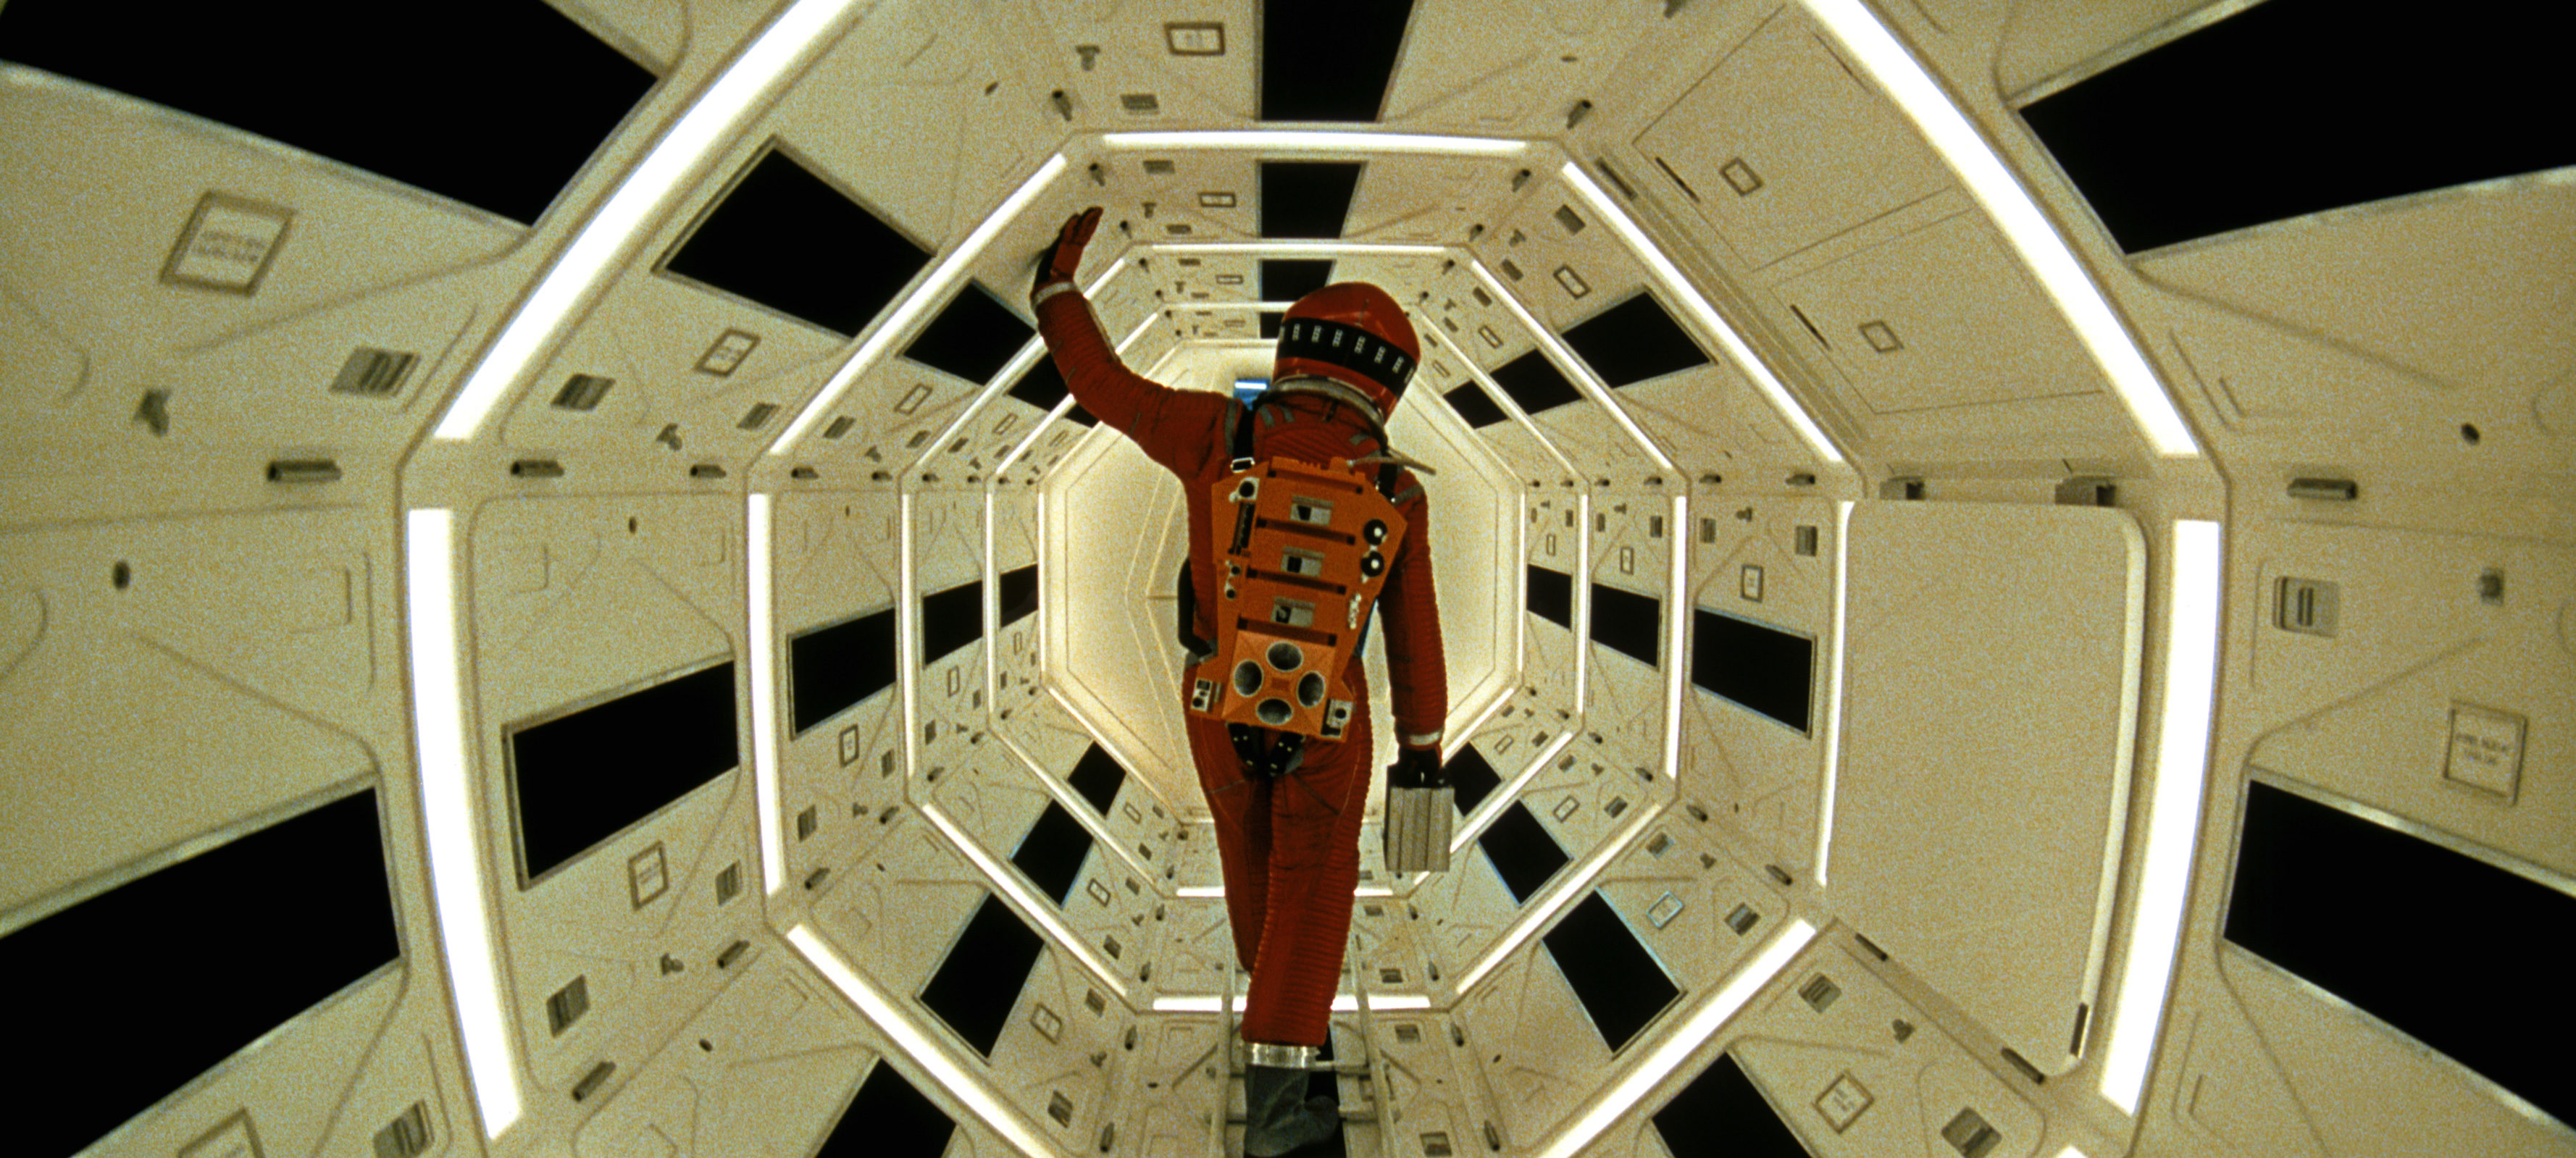 A screen capture from the film 2001: A Space Odyssey